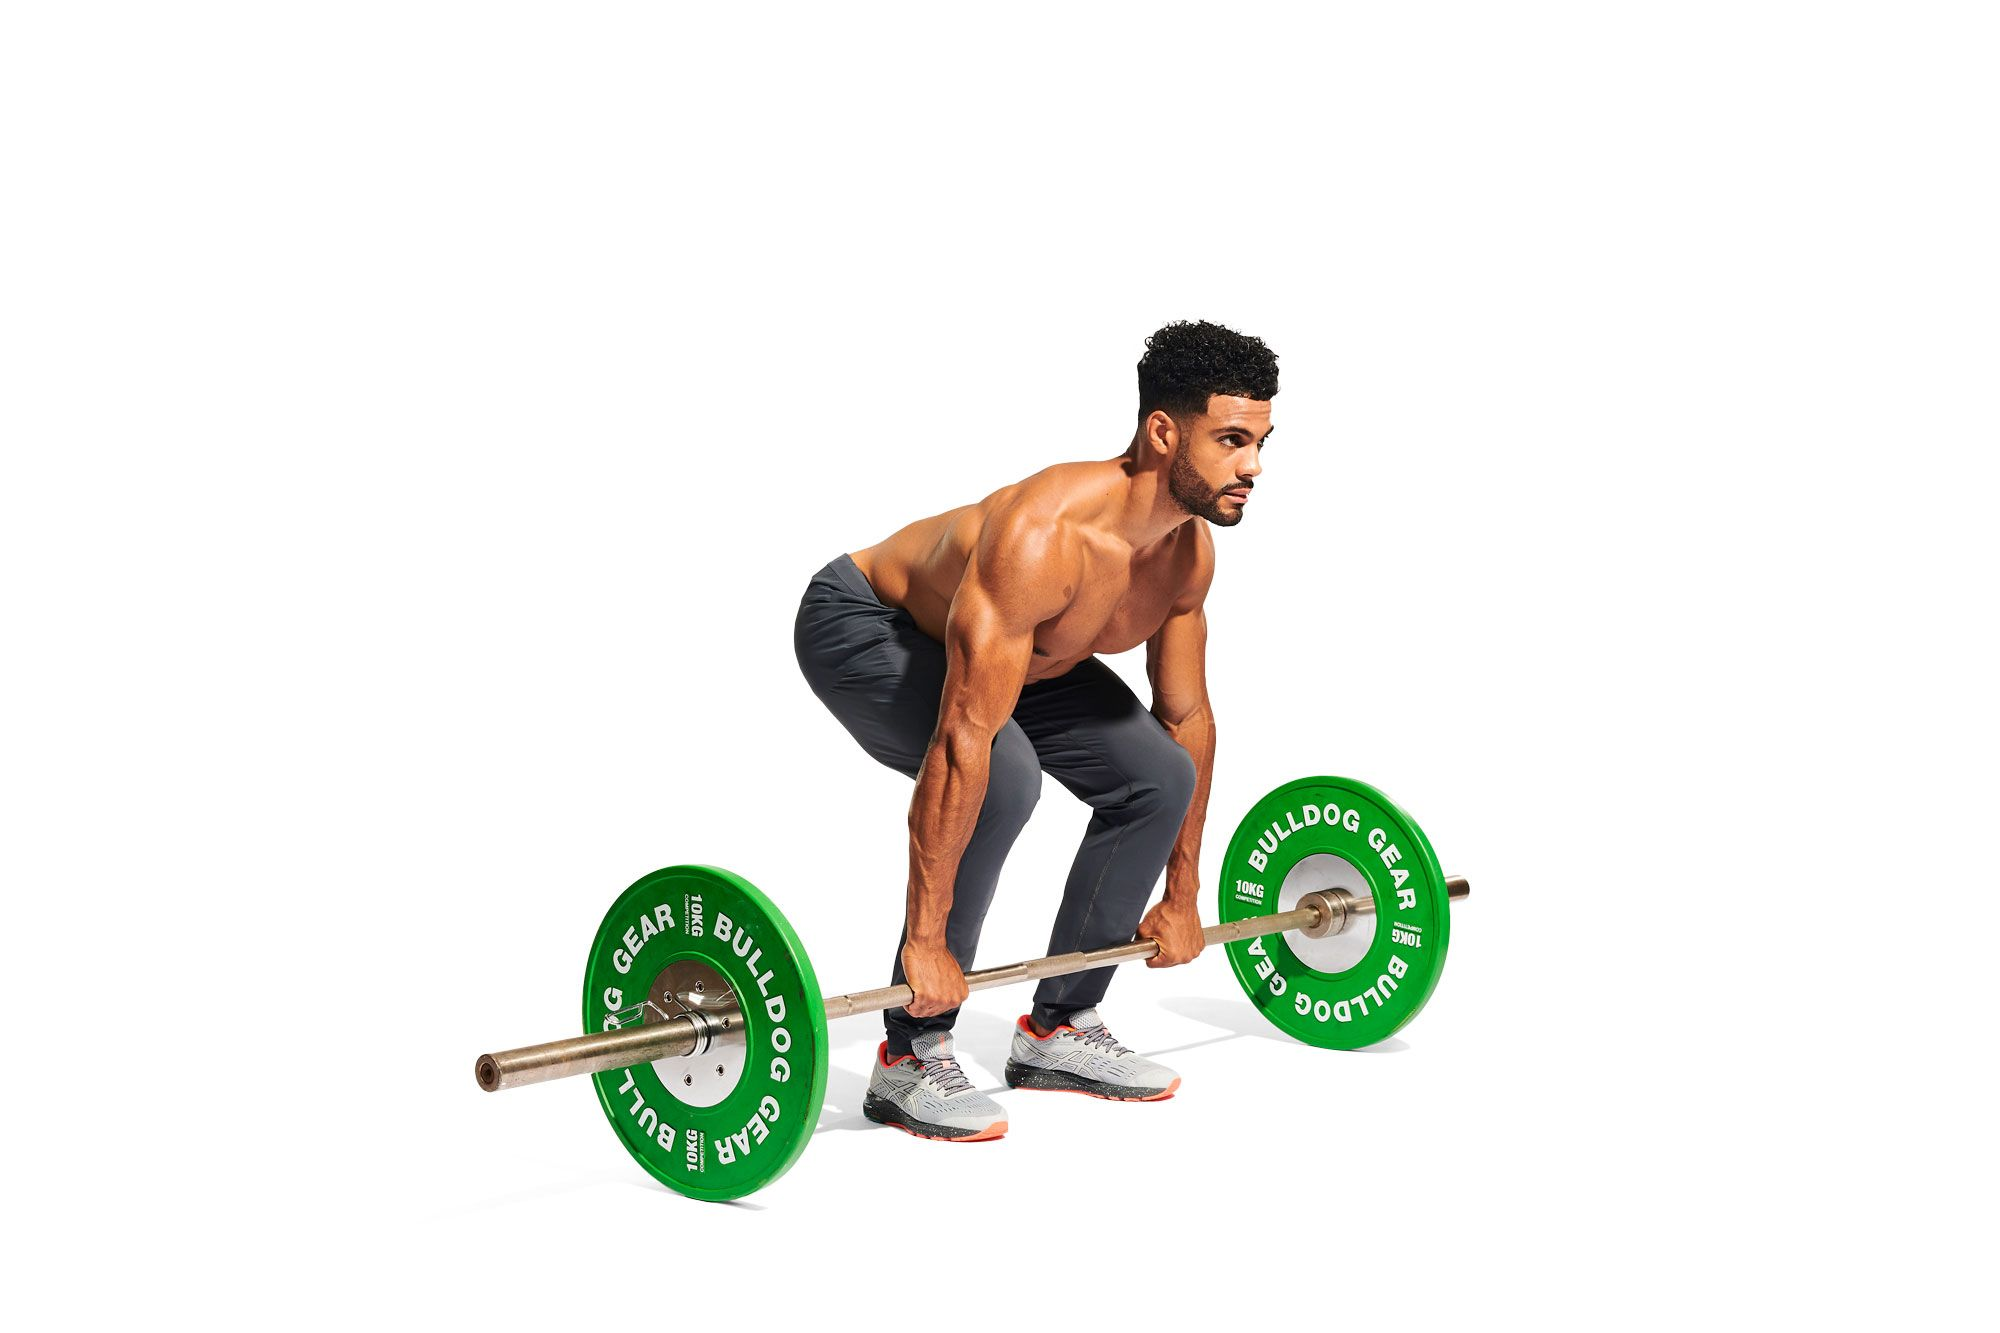 Burn Fat and Build Muscle With This All-In-One Barbell Burpee Workout